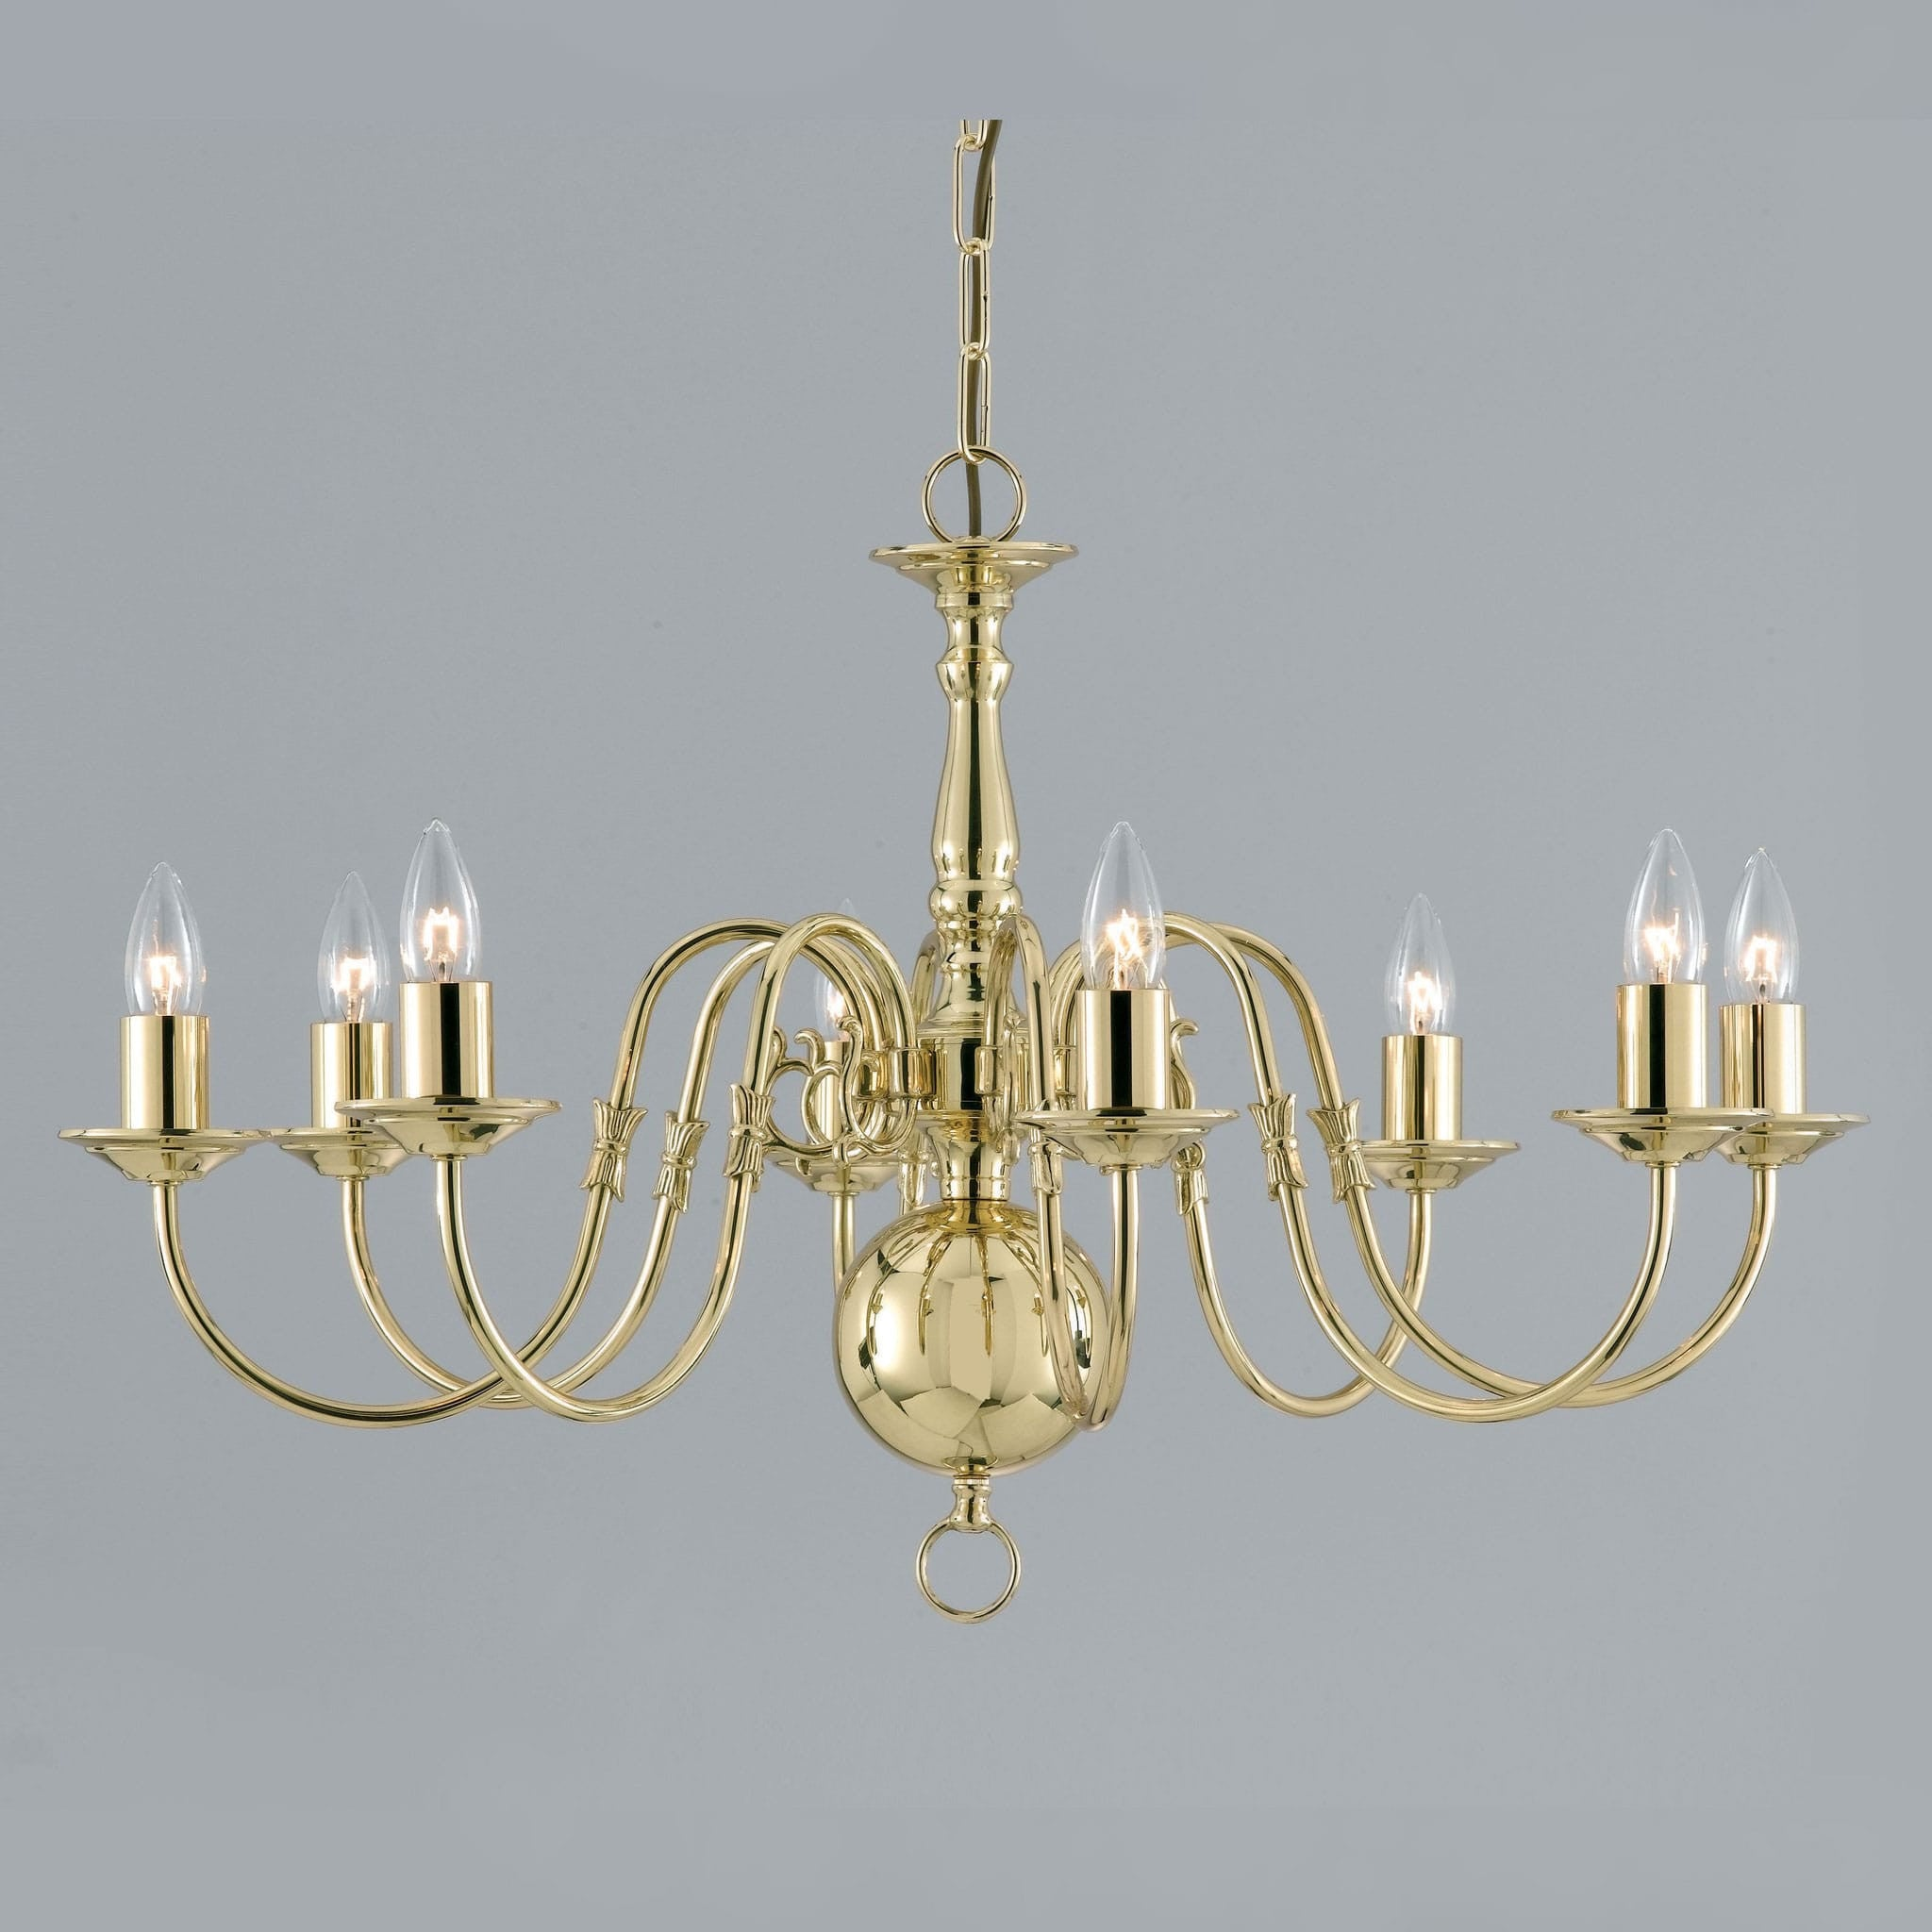 Impex flemish 8 light gold chandelier in polished brass chandelier impex flemish 8 light gold chandelier in polished brass bf0035008pb arubaitofo Gallery